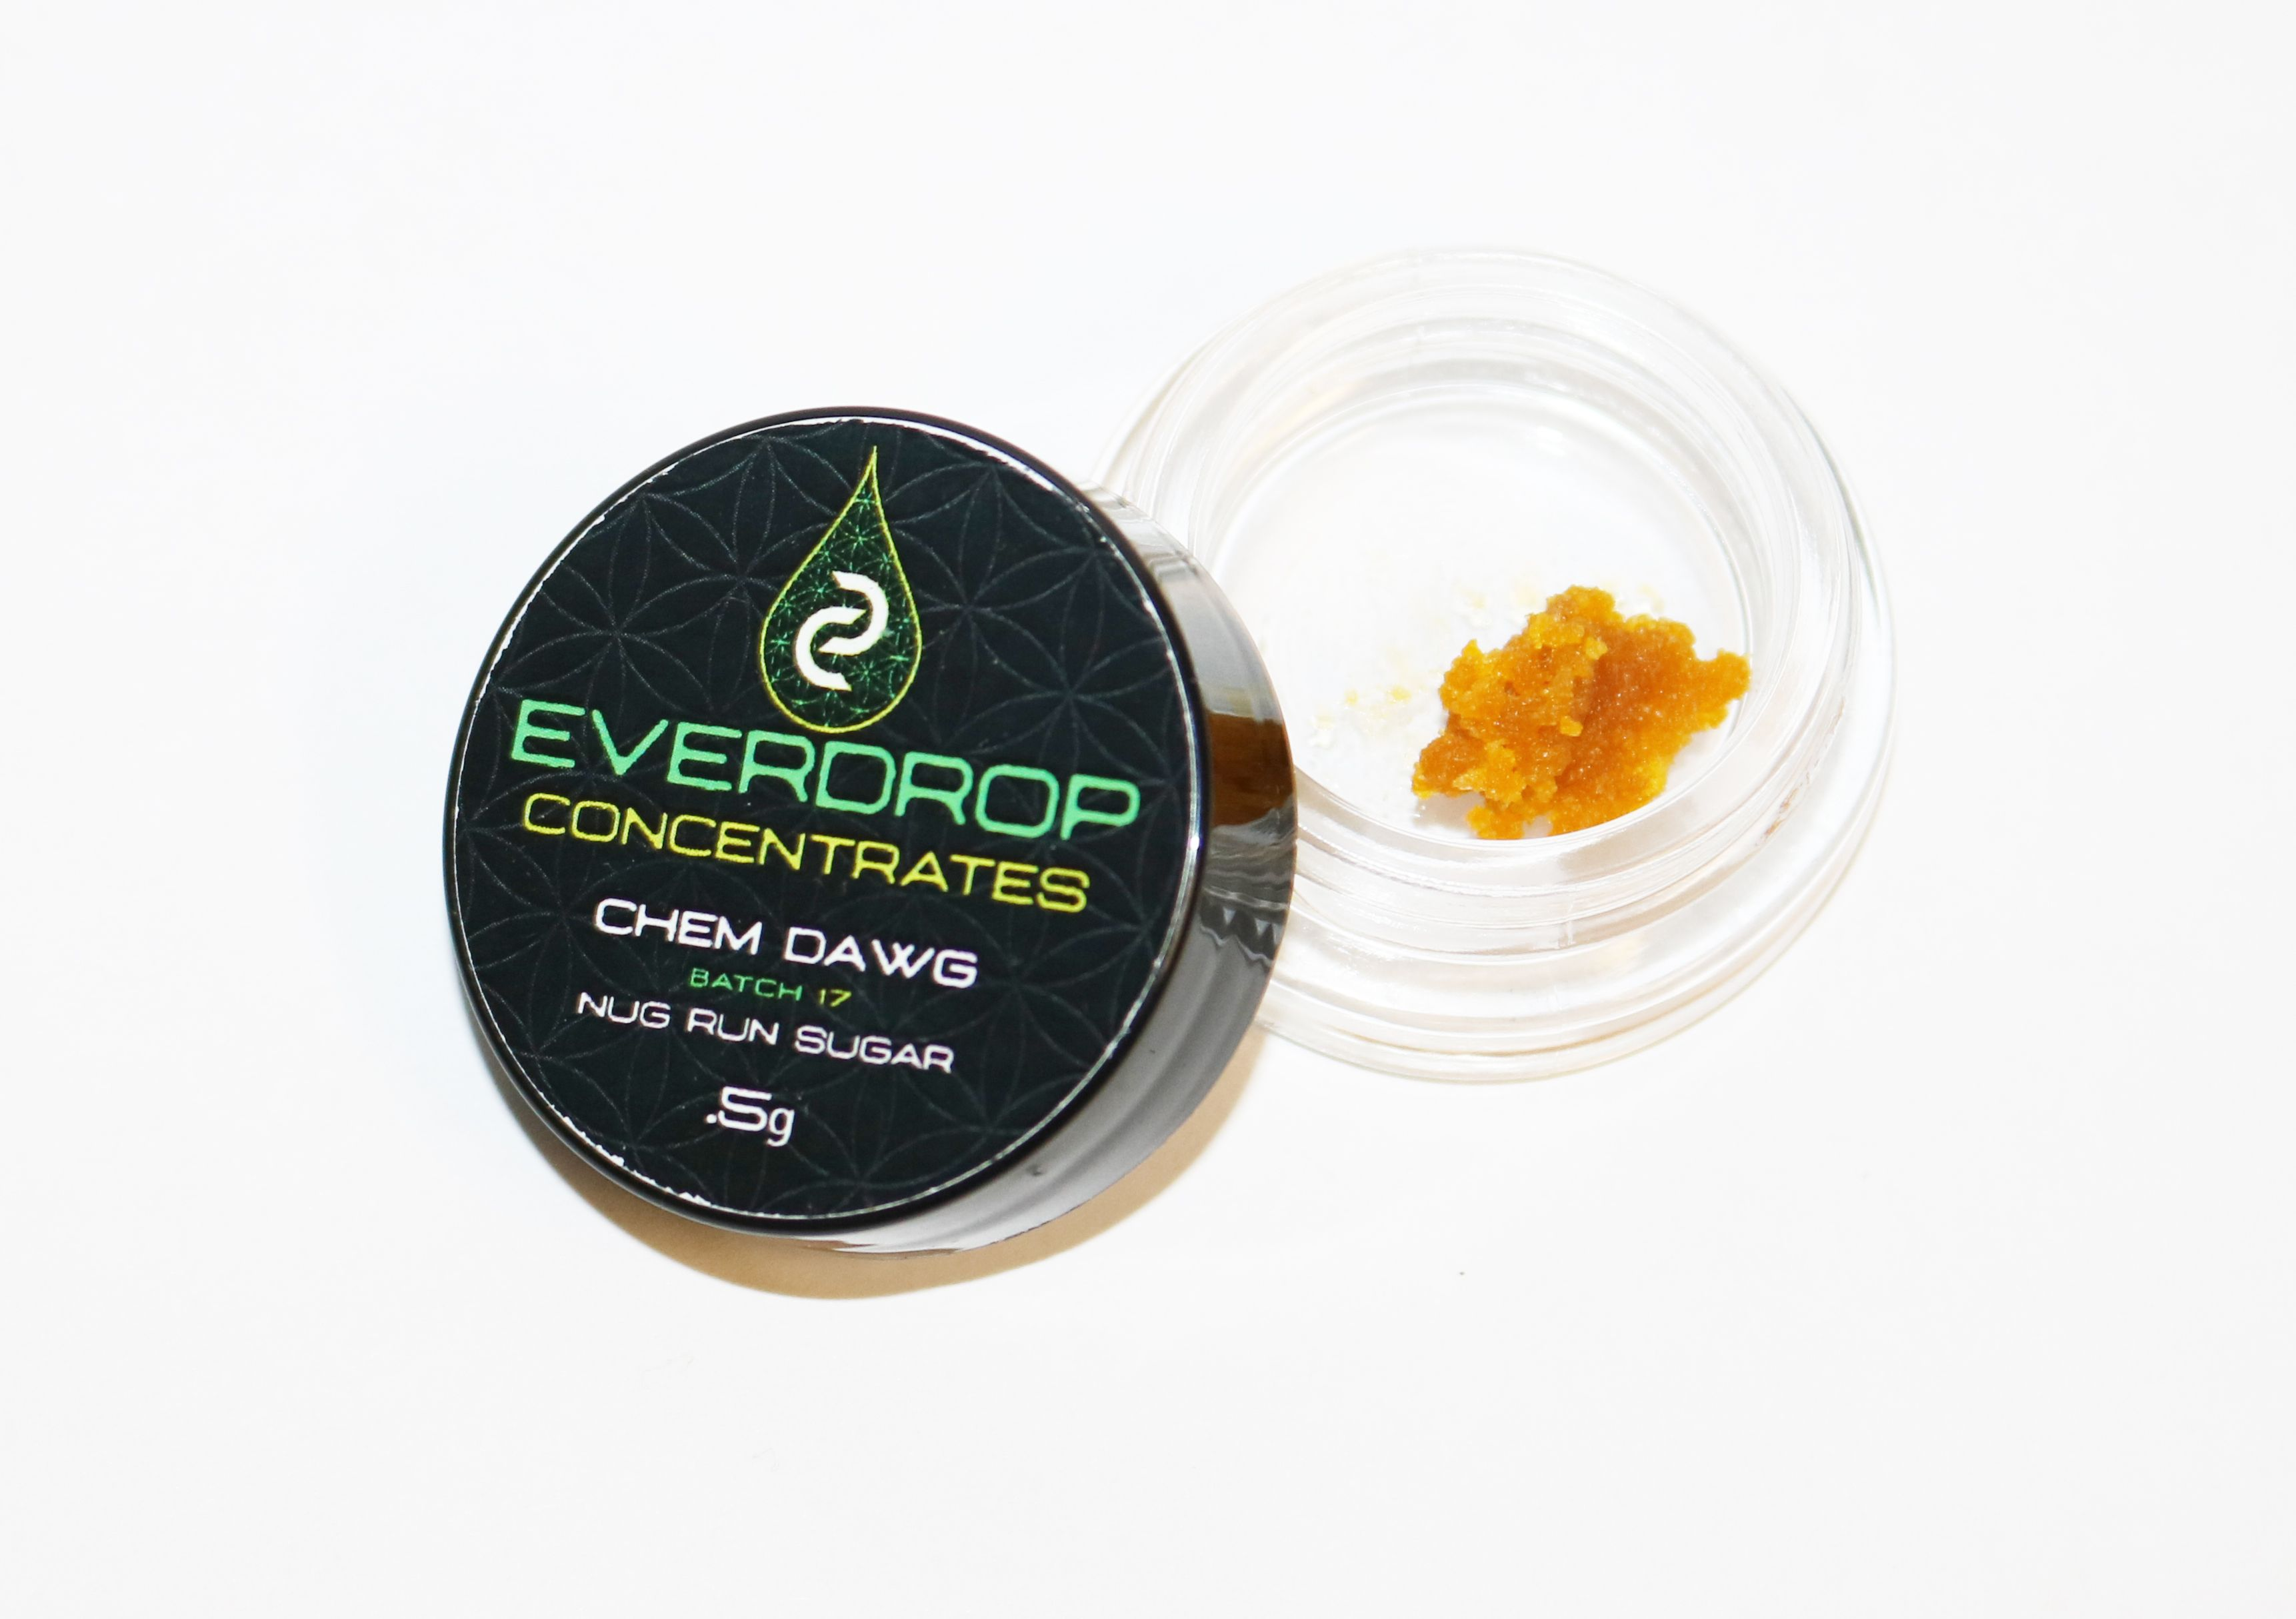 Everdrop Concentrates: Chem Dawg